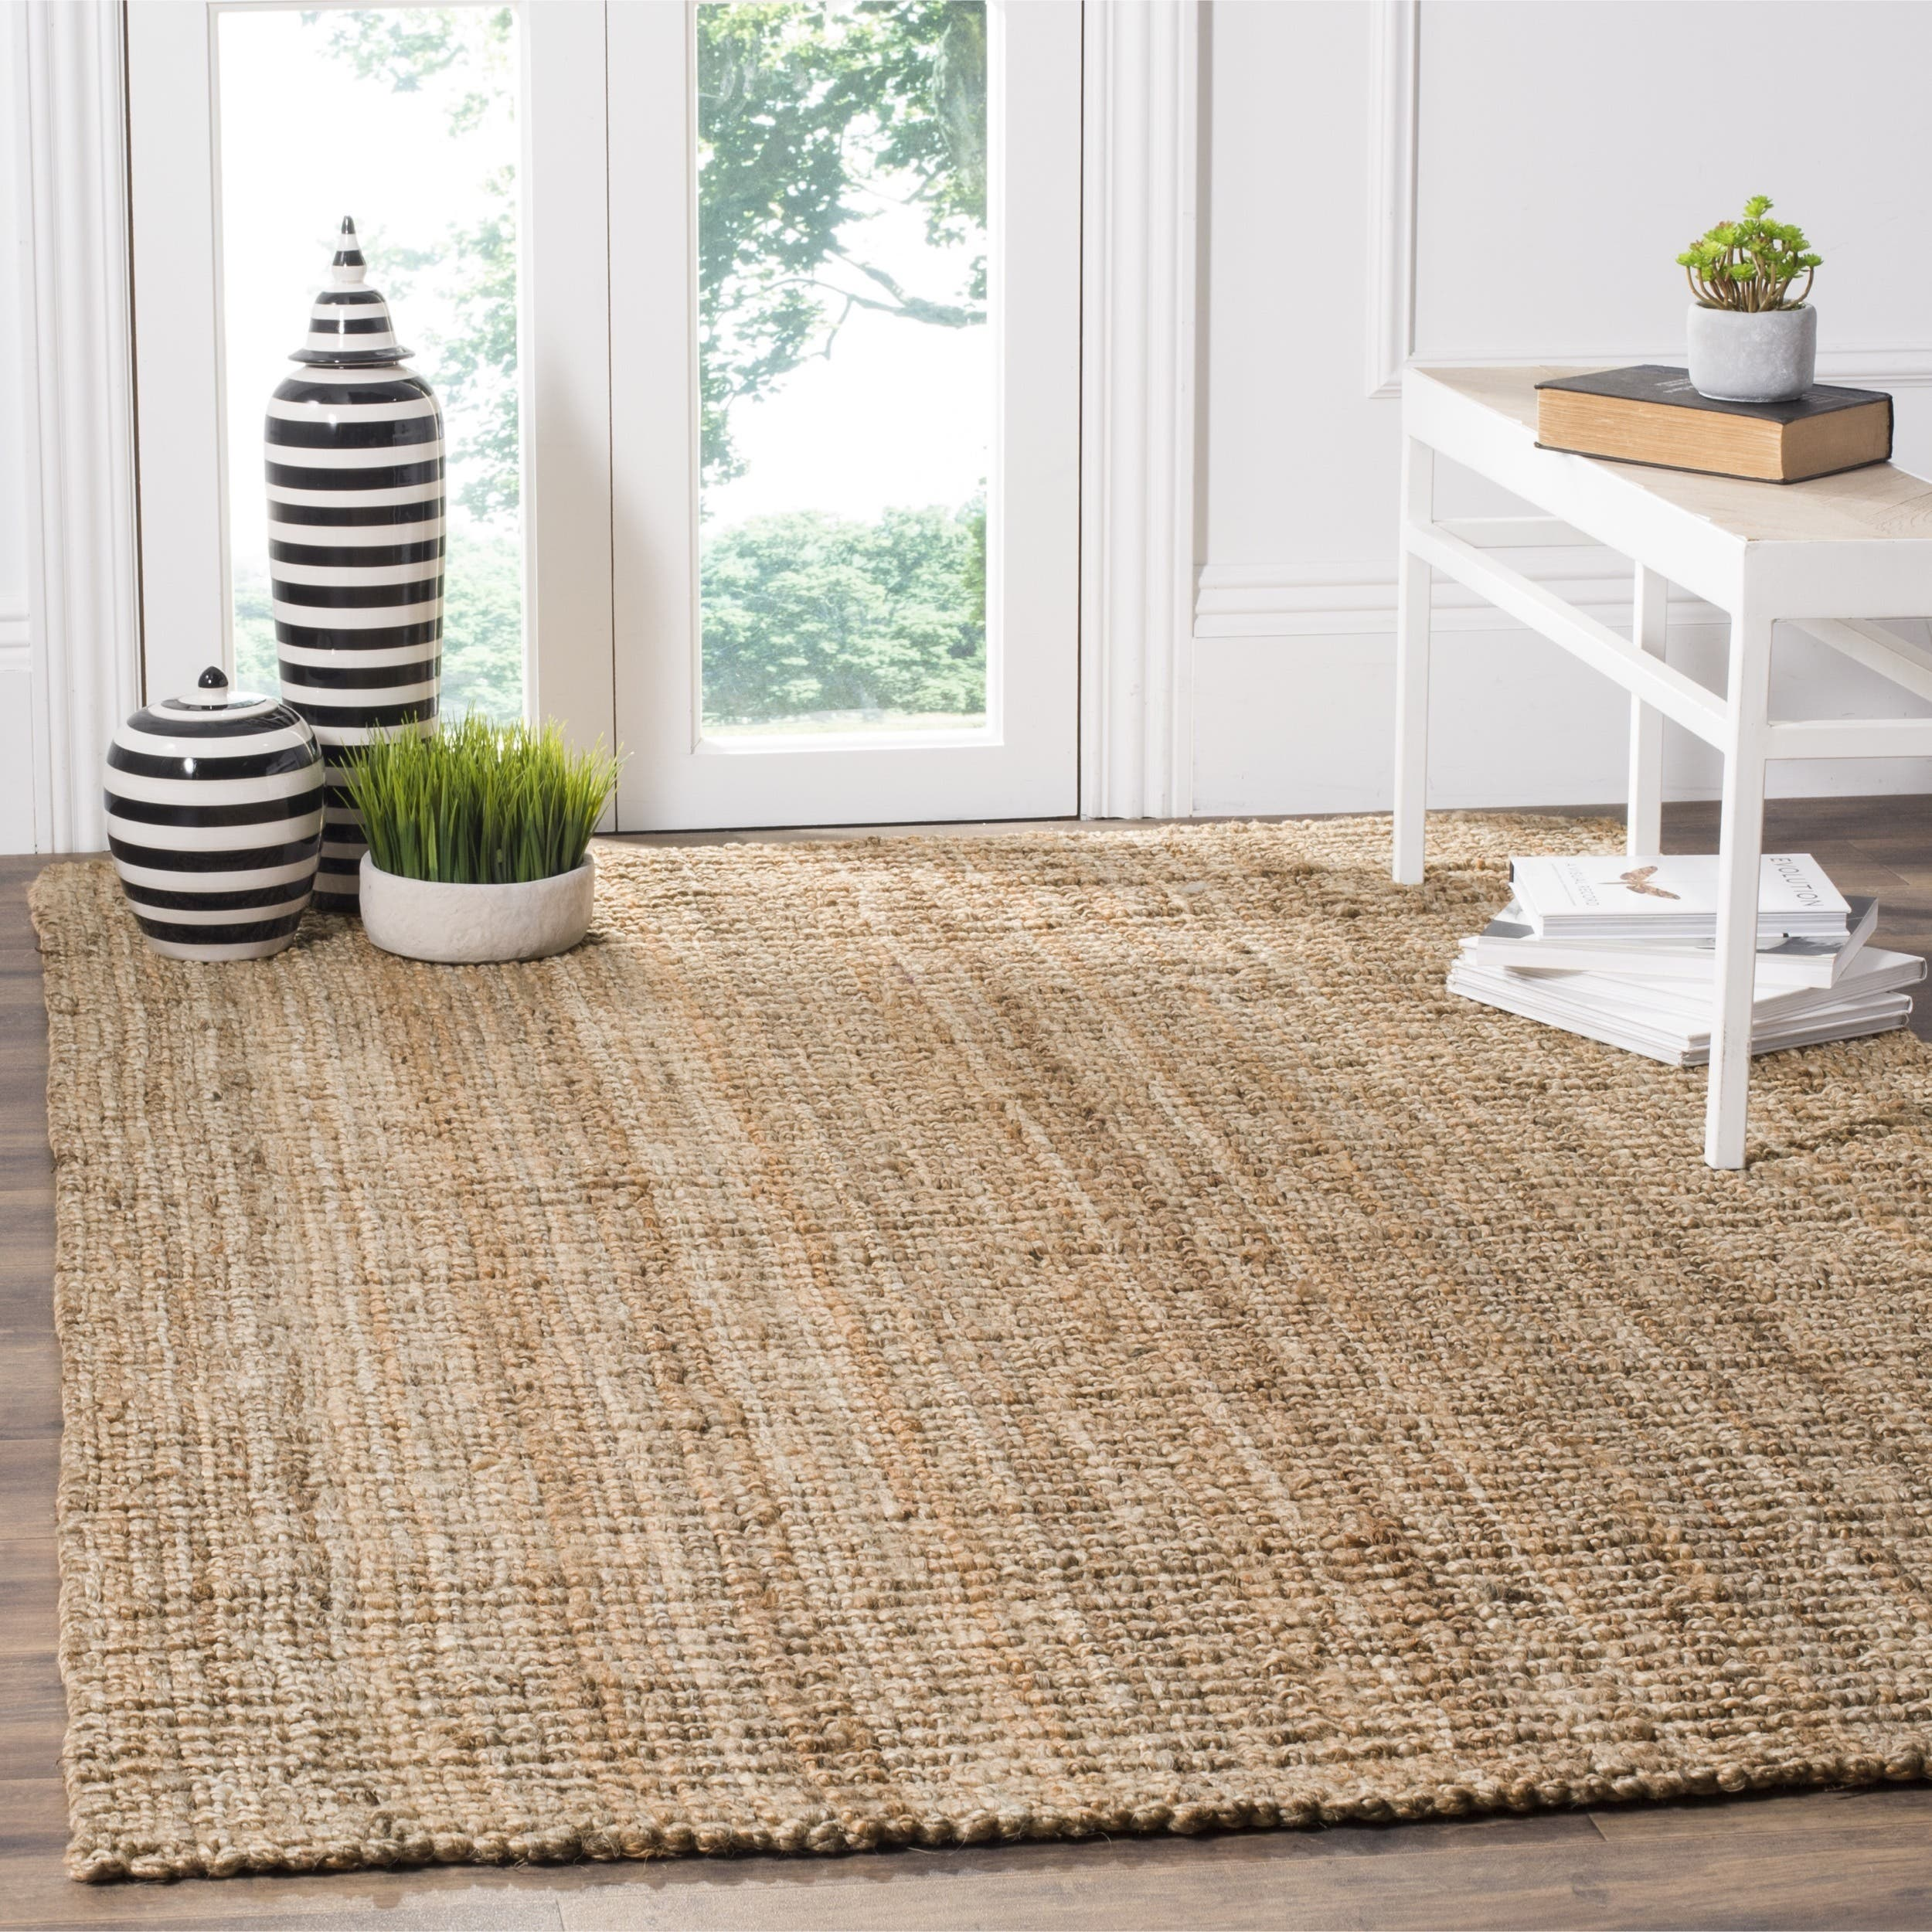 Safavieh Casual Natural Fiber Hand Woven Accents Chunky Thick Jute Rug 10